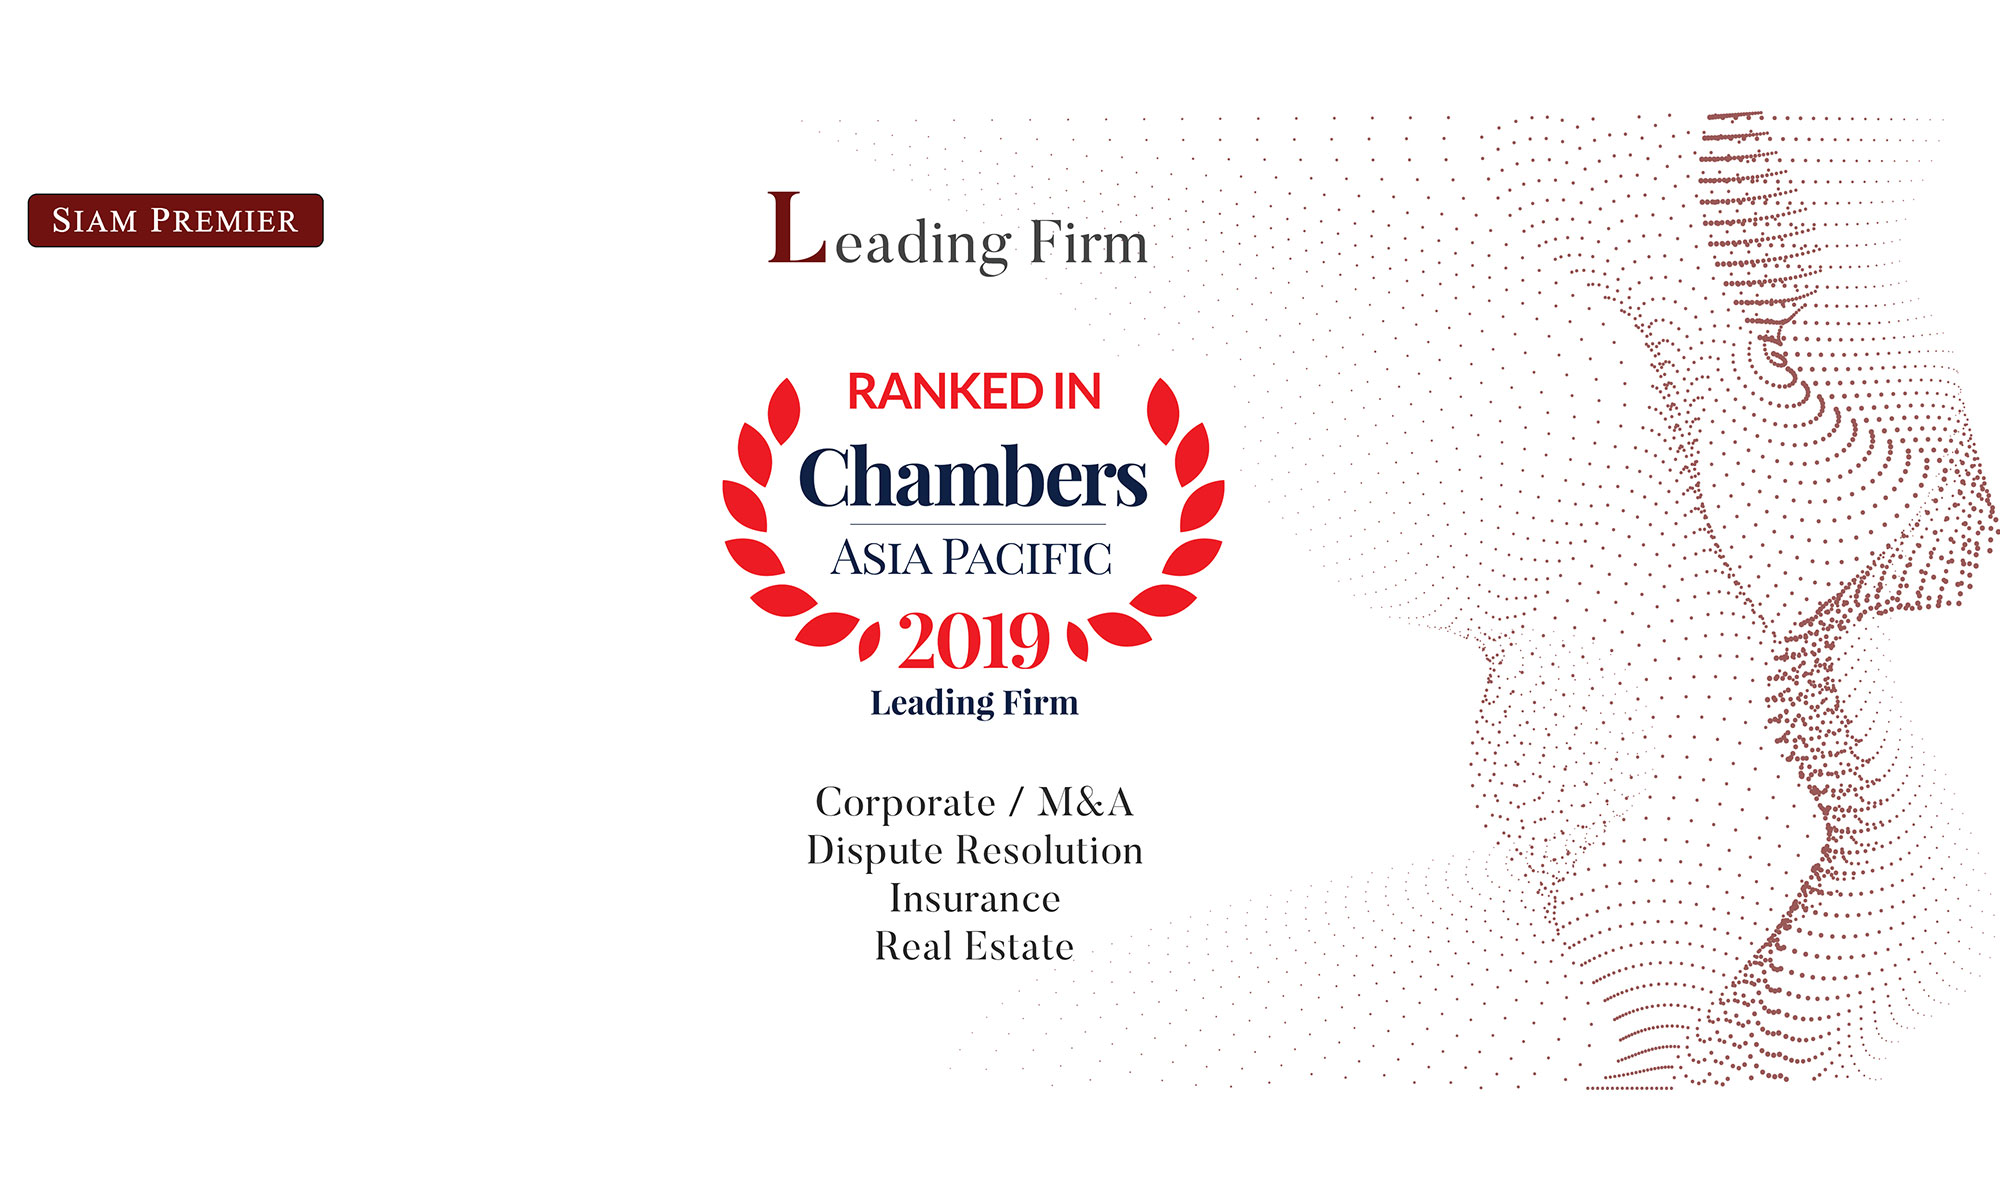 Leading Firm in Chambers Asia Pacific